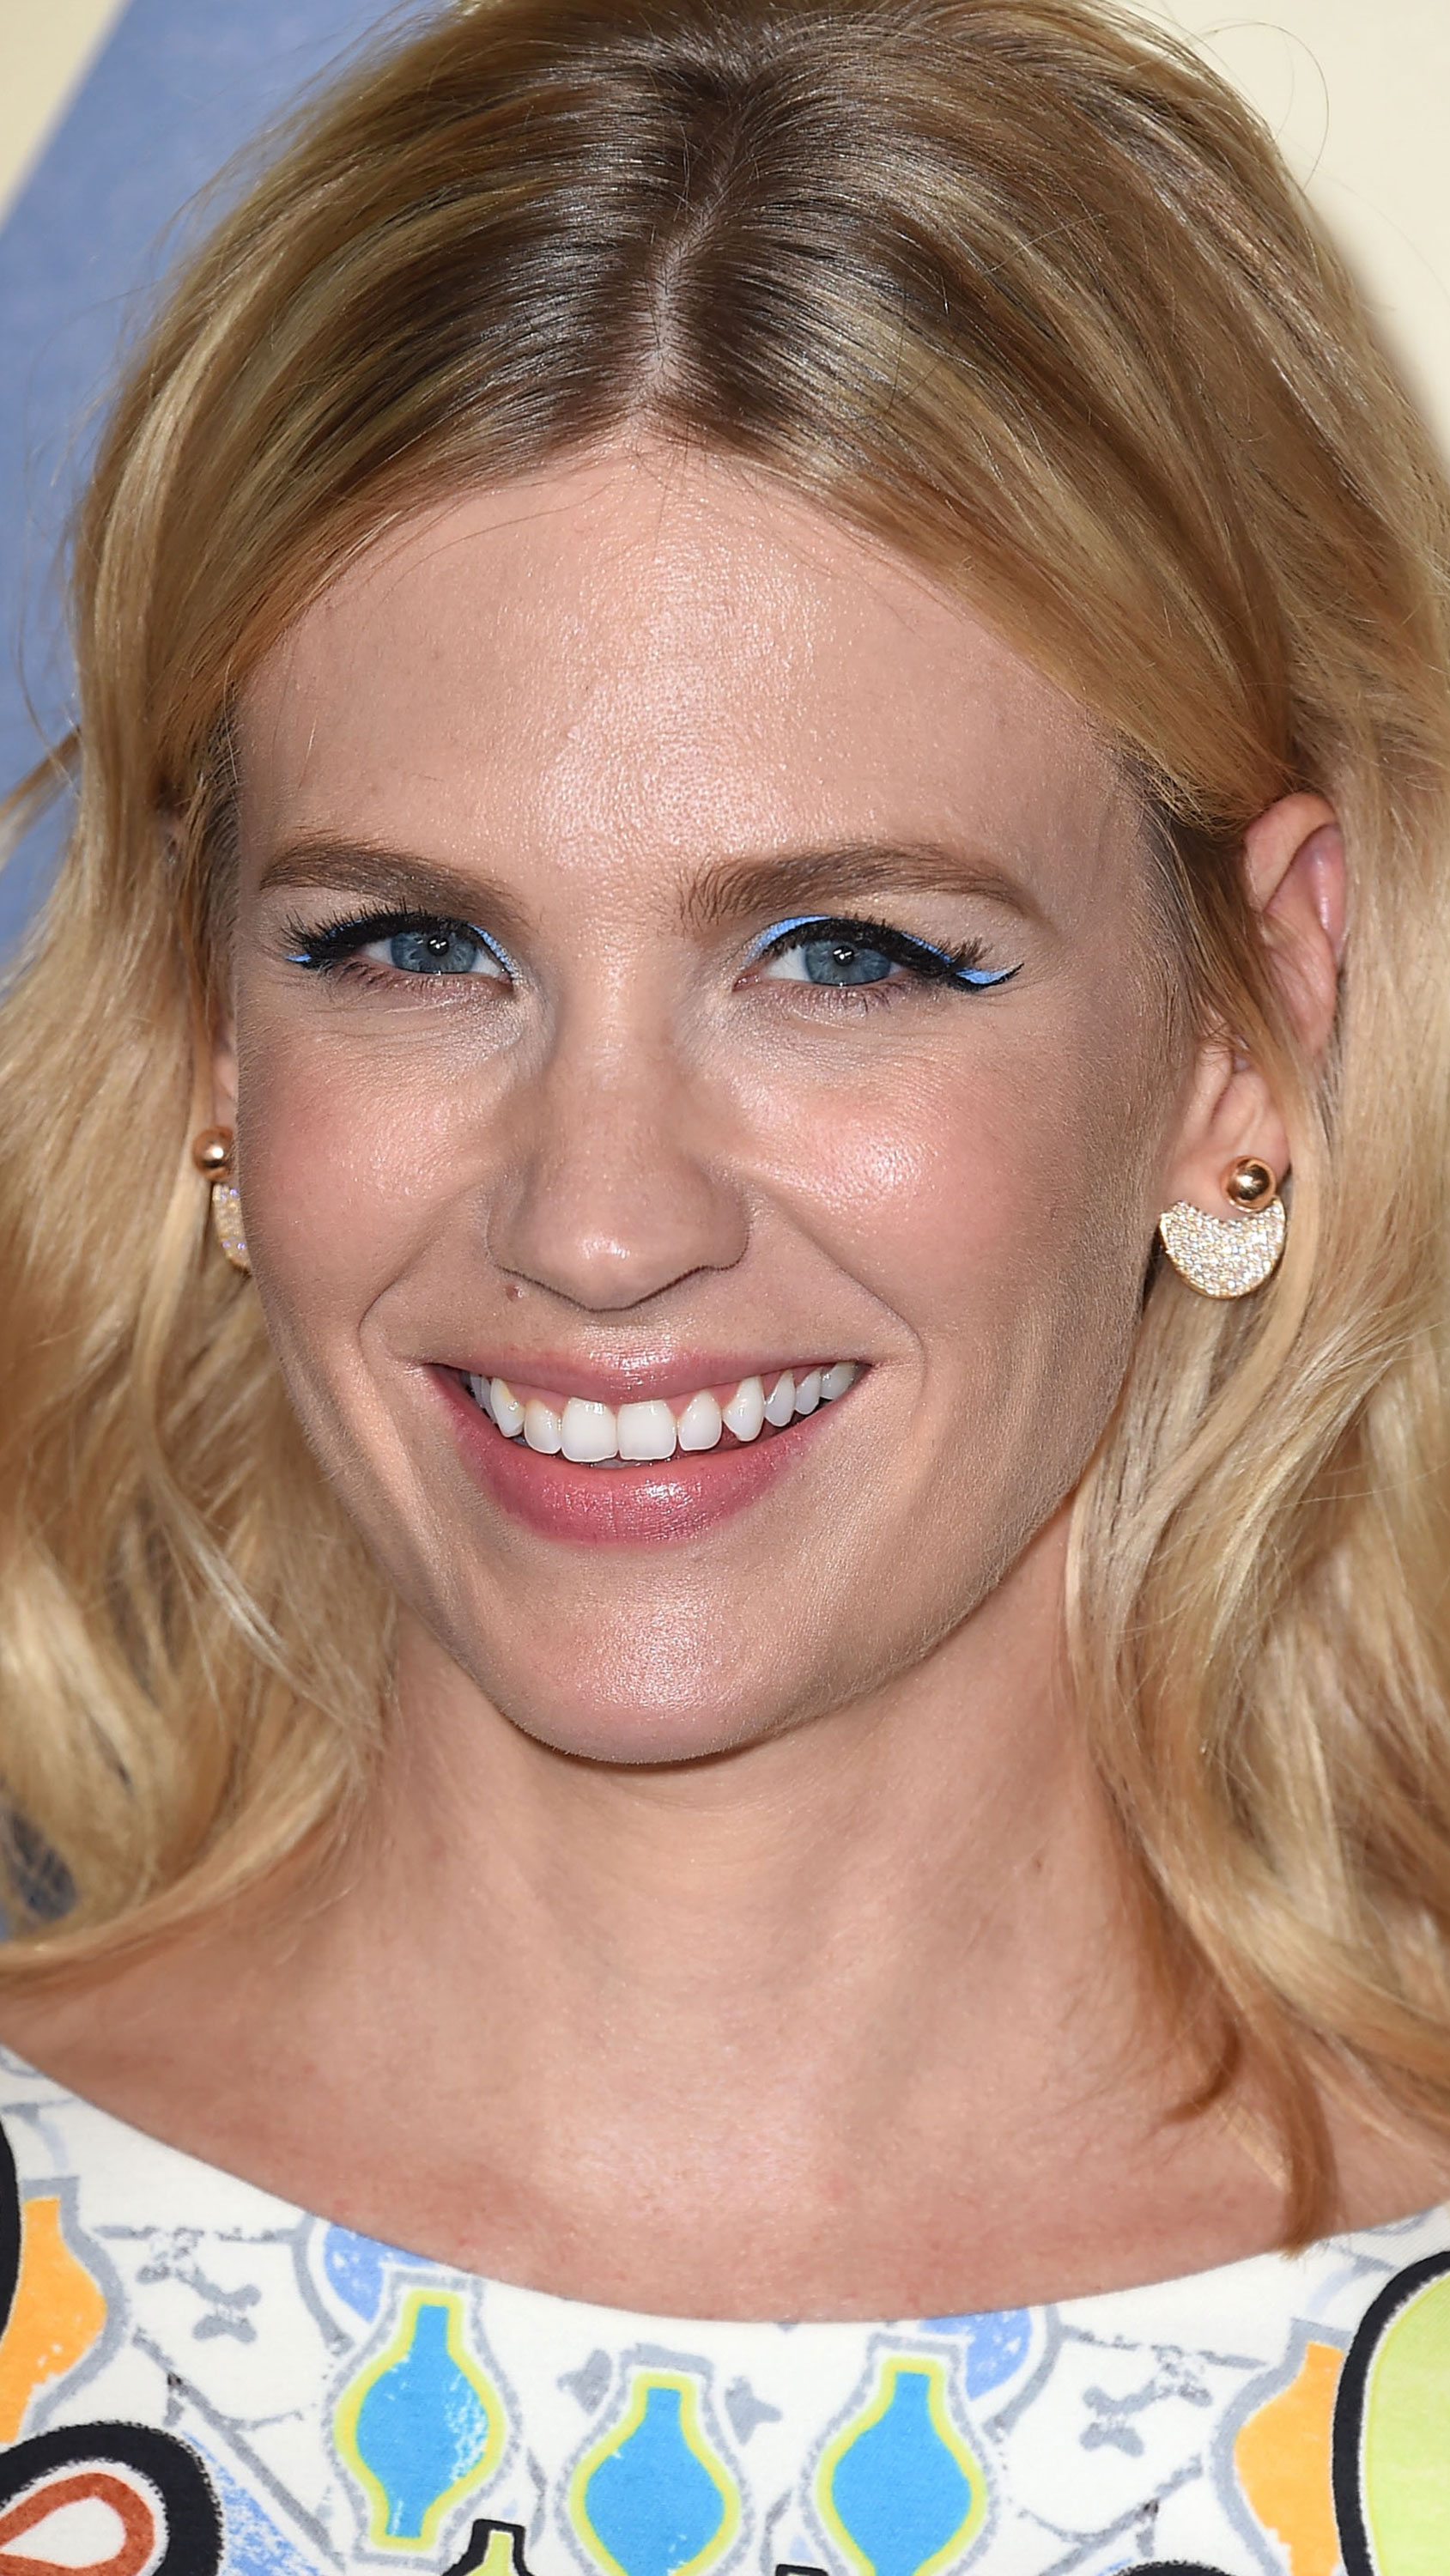 <p>One key look from the Fall 2015 runways was colourful lids - a trend that's as tricky as it is beautiful. For all those who want to play along at home, we've found your muse: actress January Jones, who worked the trend with wearable glee over the weekend. Instead of creating a standard black winged eye, she also lined the flick an electric blue. The result will have you reaching for some colour, so we've rounded up 19 far-from-boring shades to help you in your search. </p>